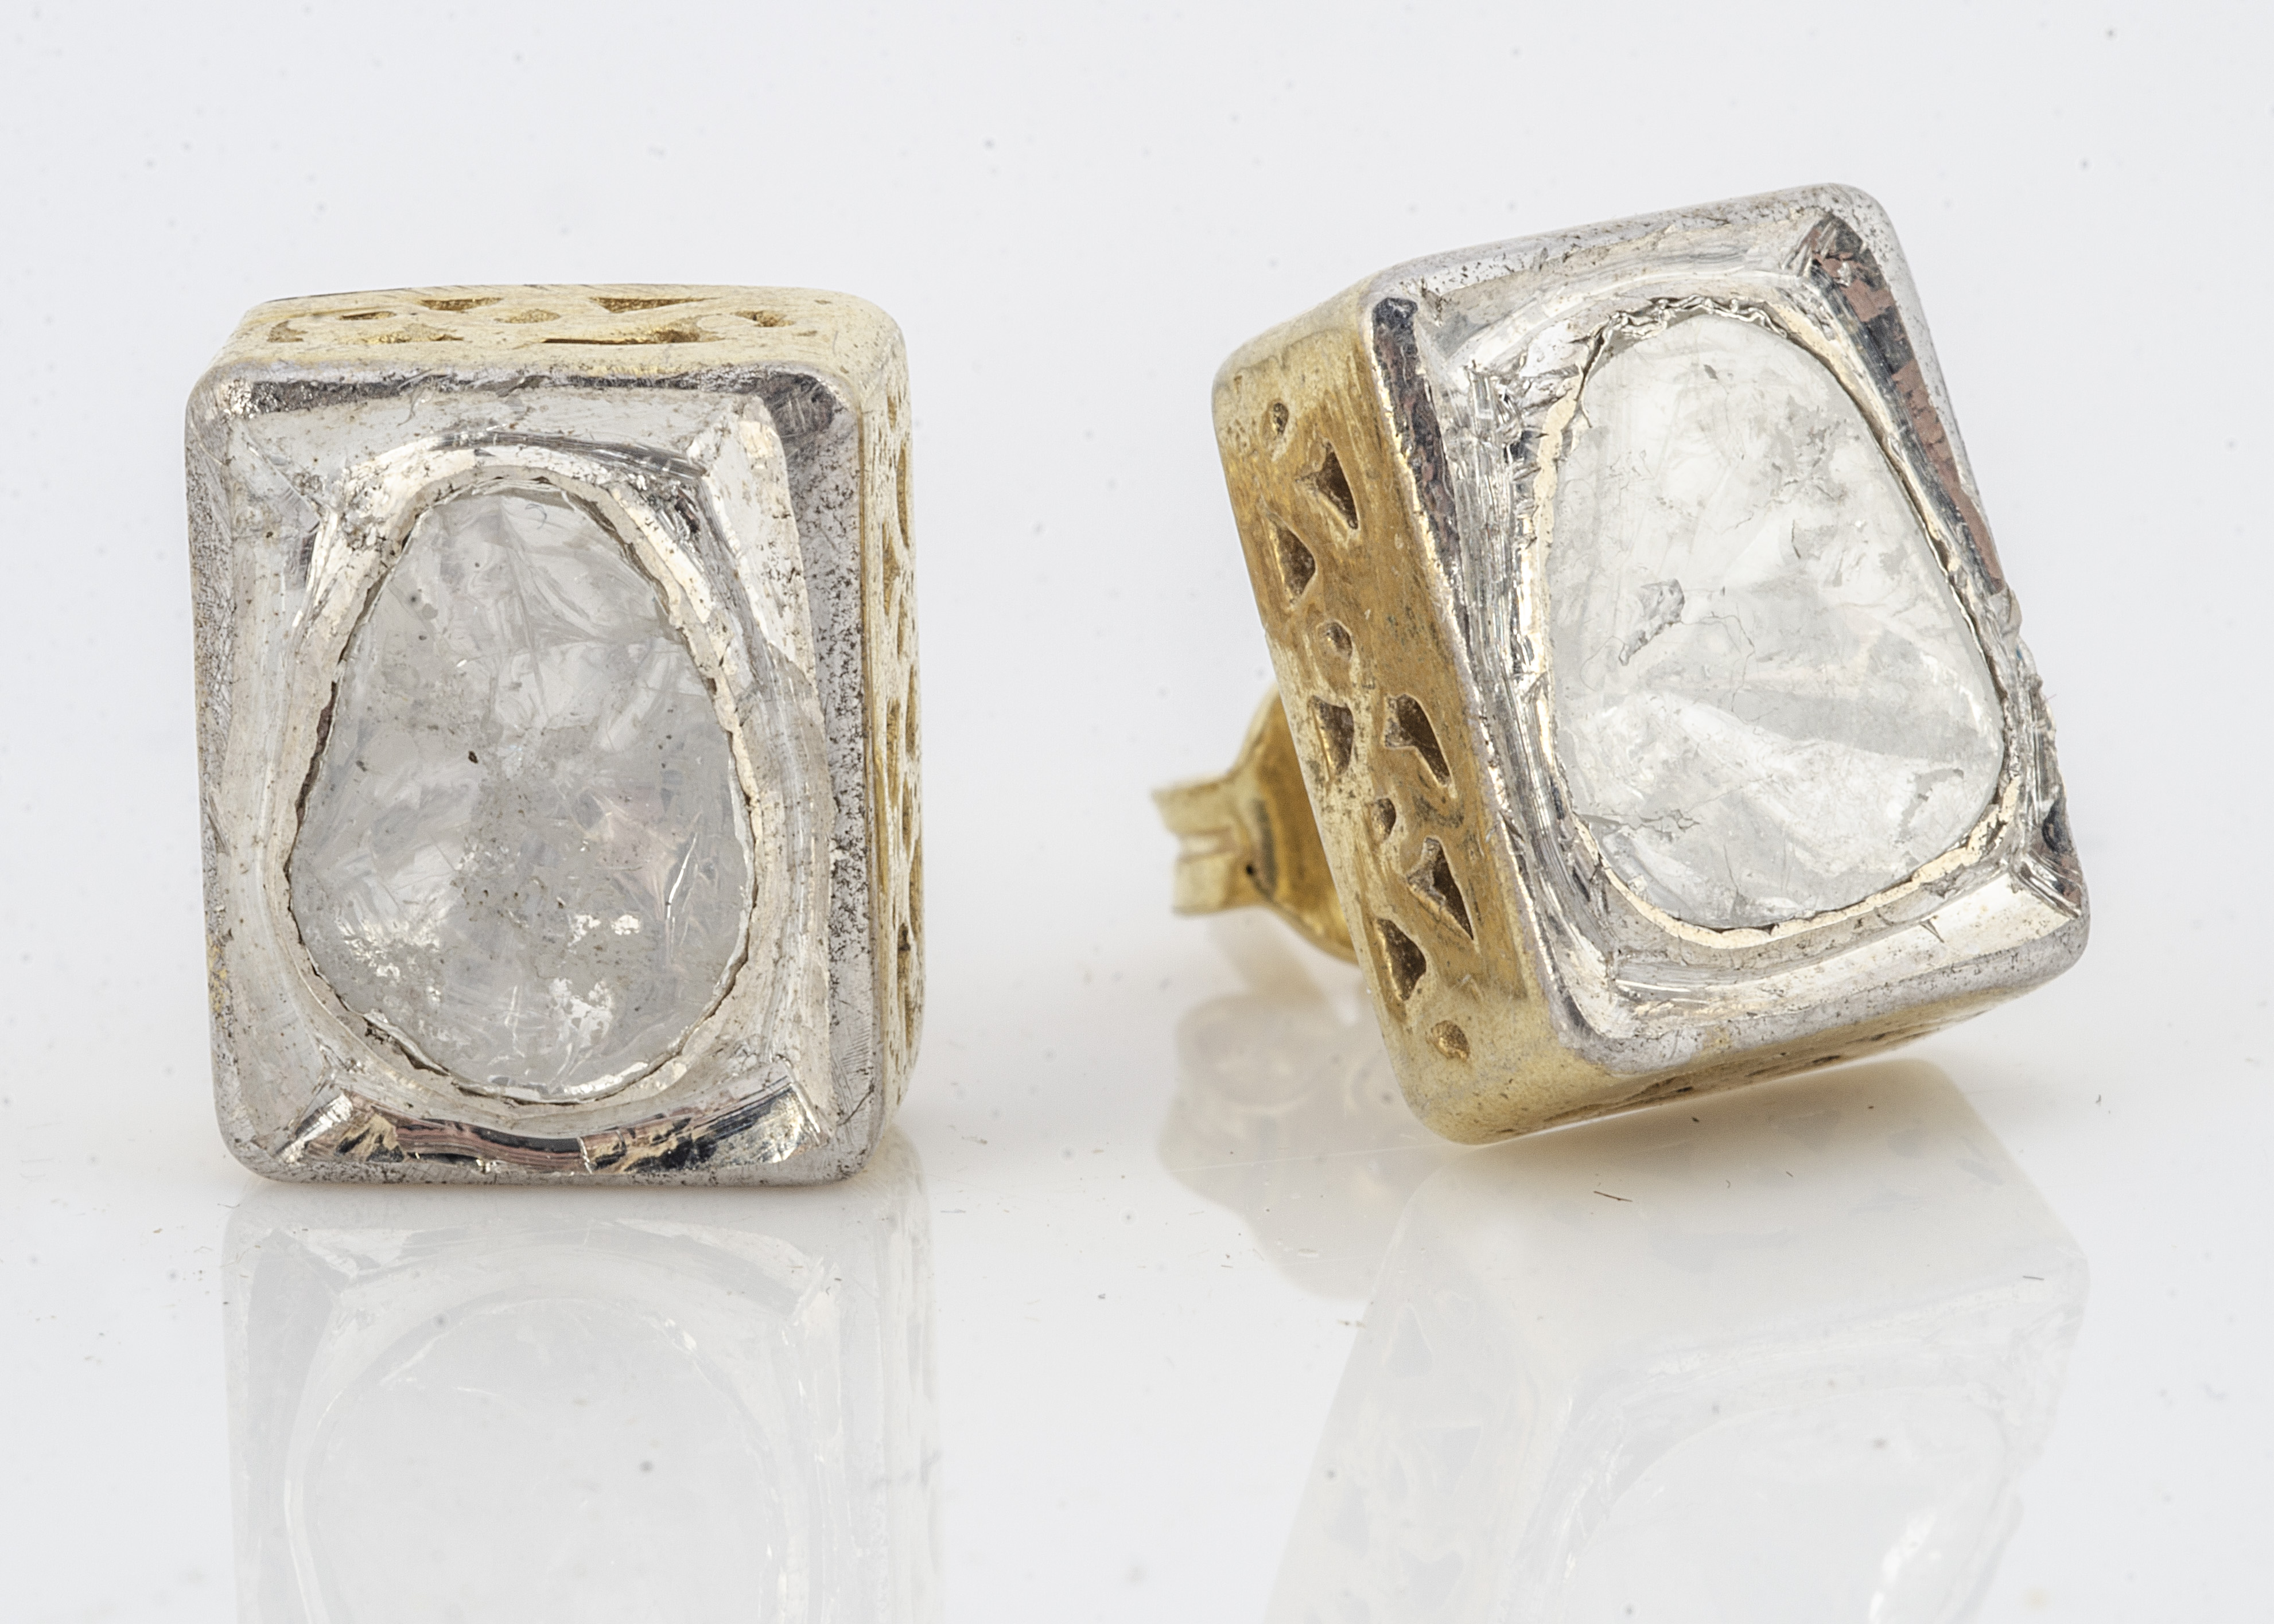 A pair of silver gilt and diamond slither stud earrings, in rubbed over settings of rectangular